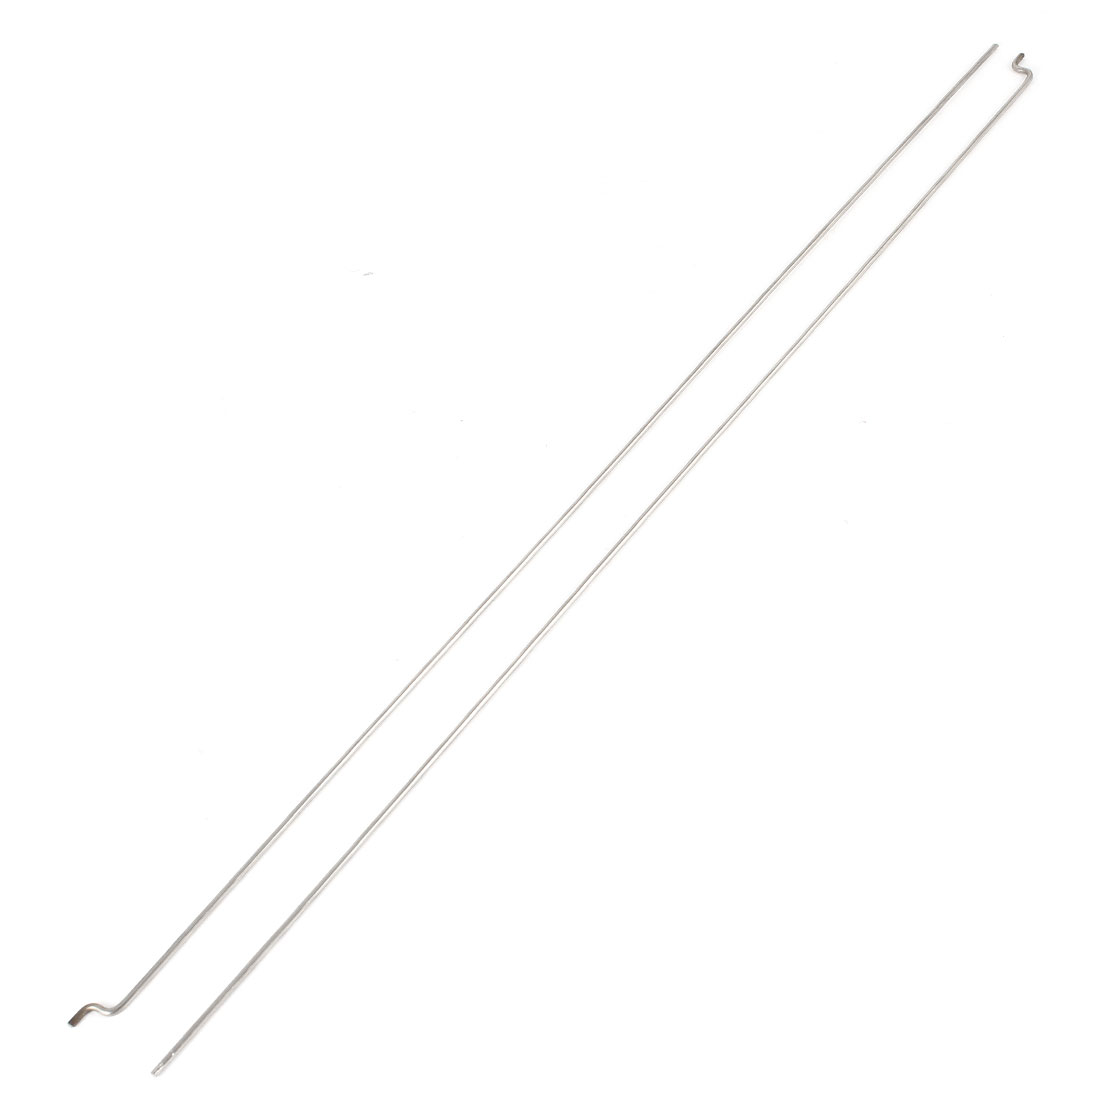 2PCS 330mm x 1.5mm Stainless Steel Push Rods Piano Wire for EP Nitro Gas Boat Marine